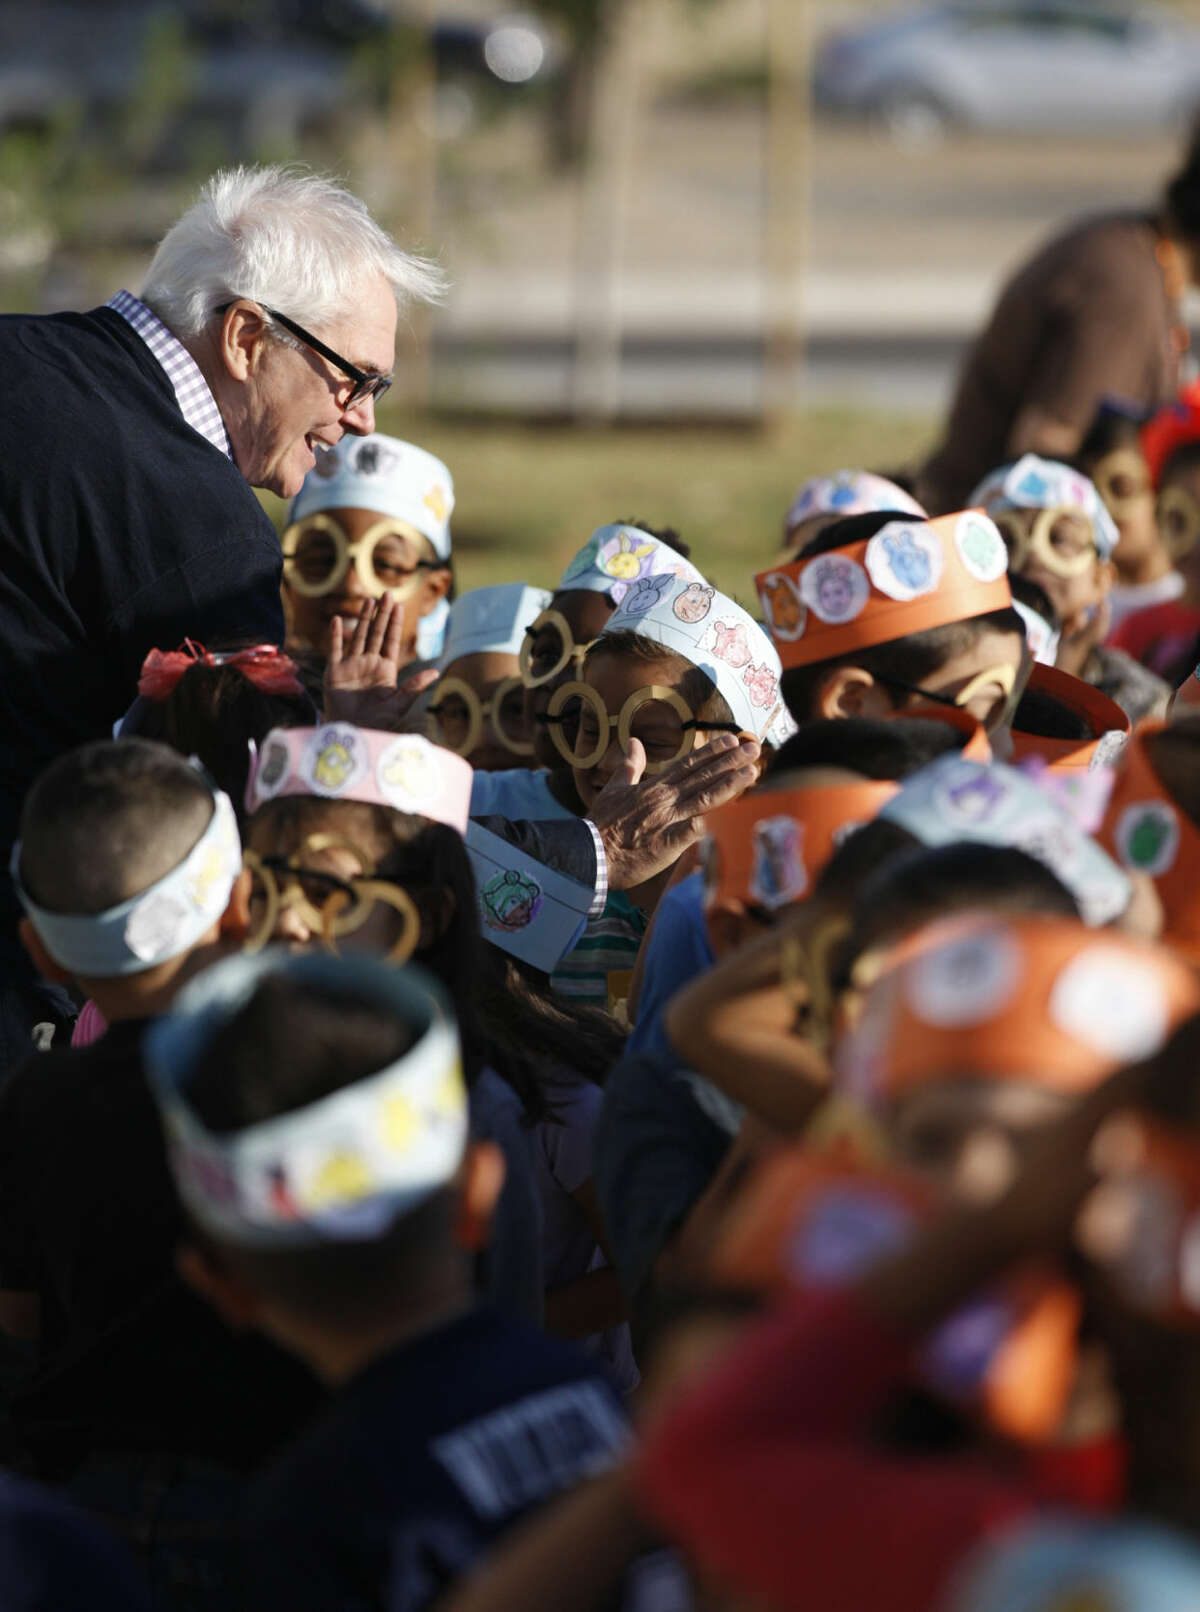 """Project Literacy 2015 launched from Washington Park and traveled to Bunche Elementary on Monday, Sept. 14, 2015. Marc Brown, author of the """"Arthur"""" series of books, made an appearance to speak to children about reading and teach them how to draw characters from the book. James Durbin/Reporter-Telegram"""